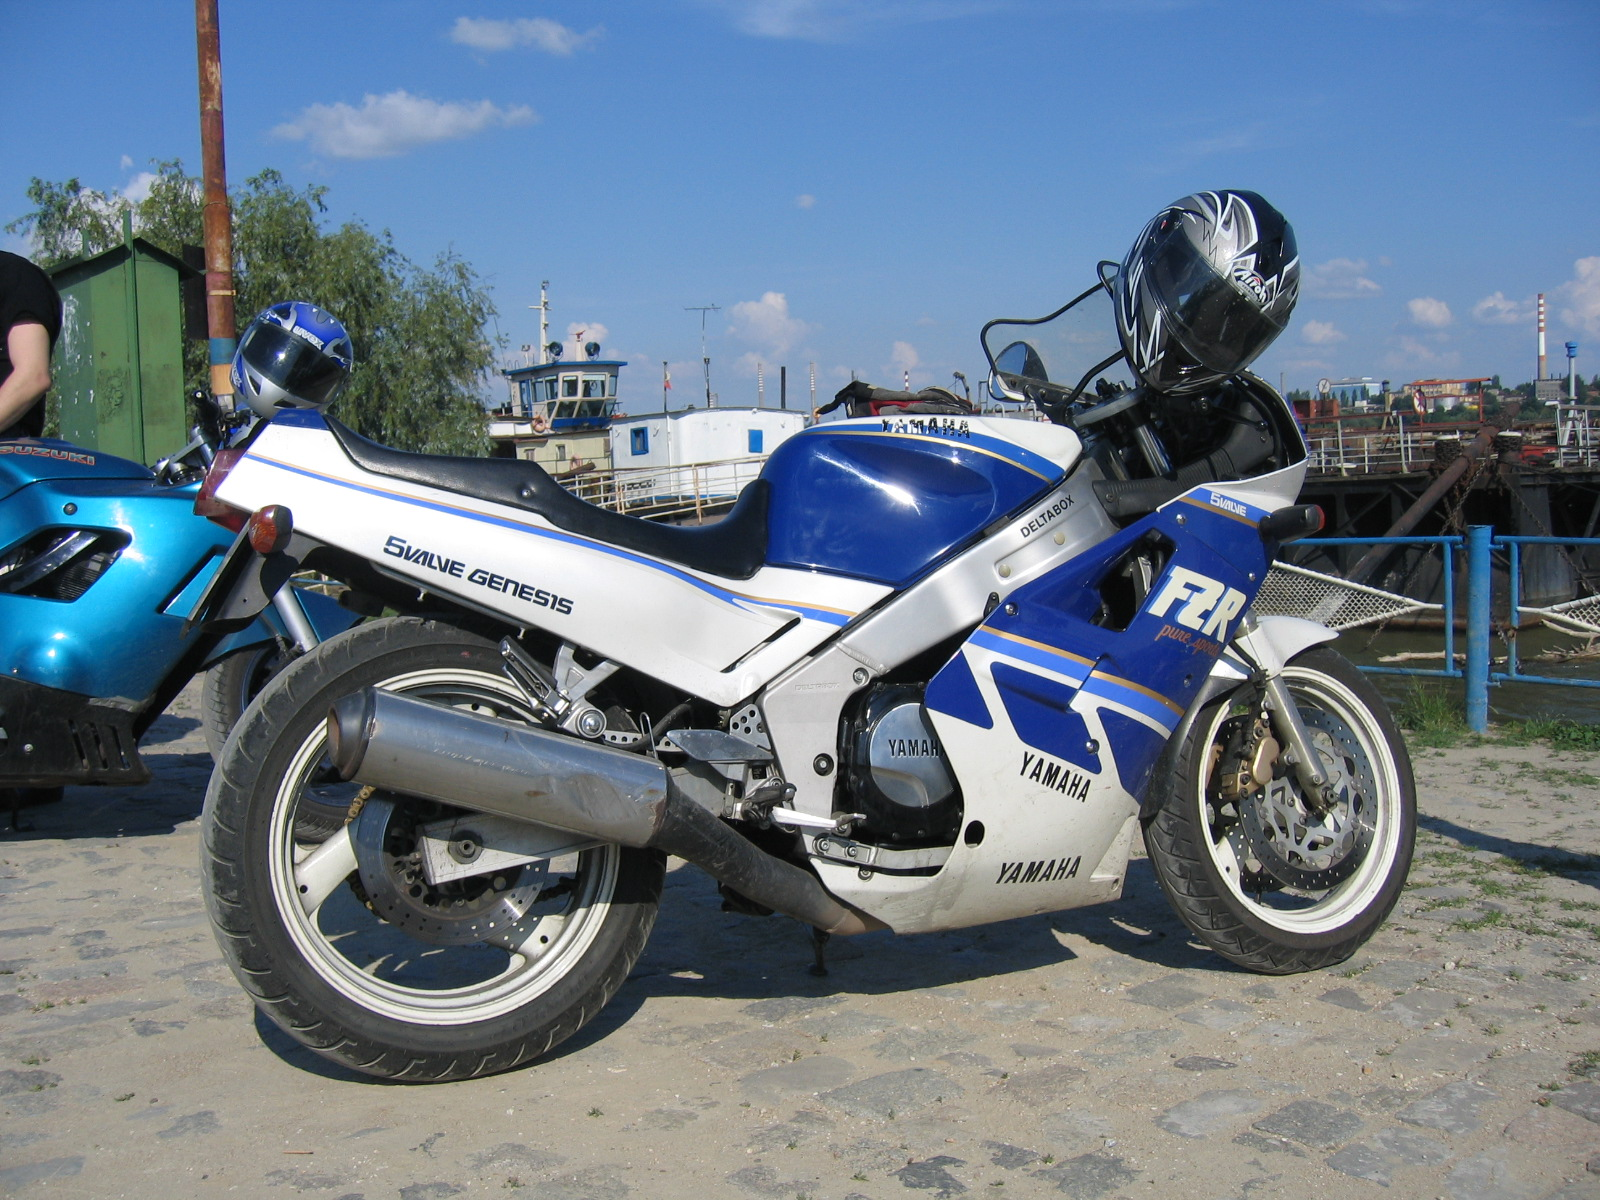 Yamaha FZR 750 R (reduced effect) 1990 #5